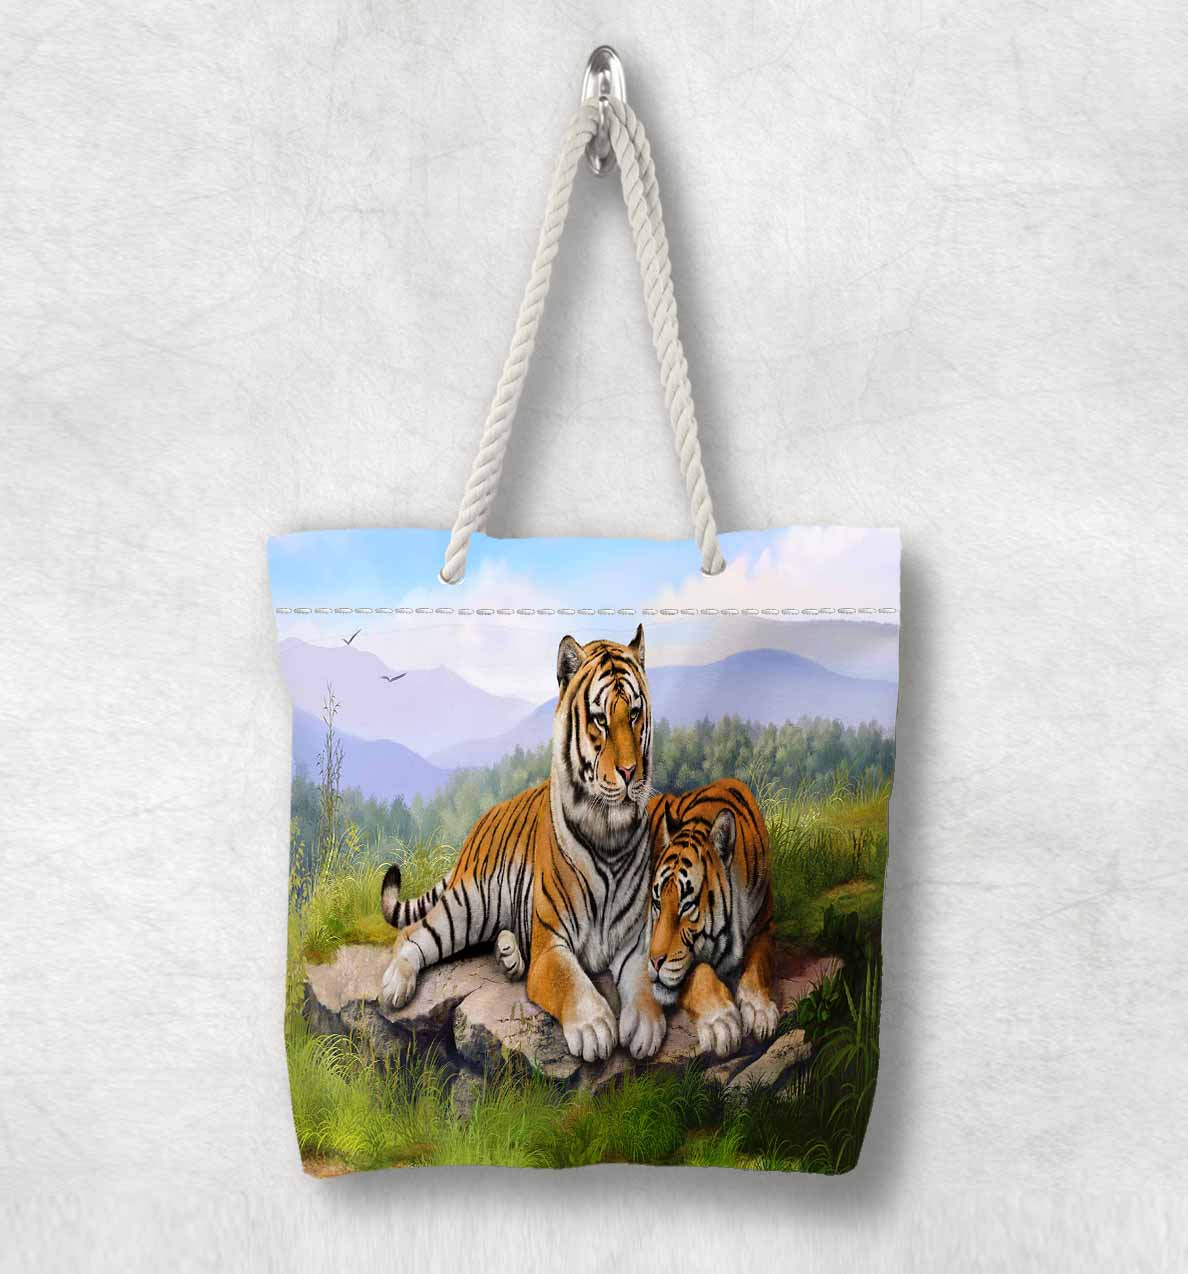 Else Green Jungle on Brown Tigers Animals New Fashion White Rope Handle Canvas Bag Cotton Canvas Zippered Tote Bag Shoulder Bag